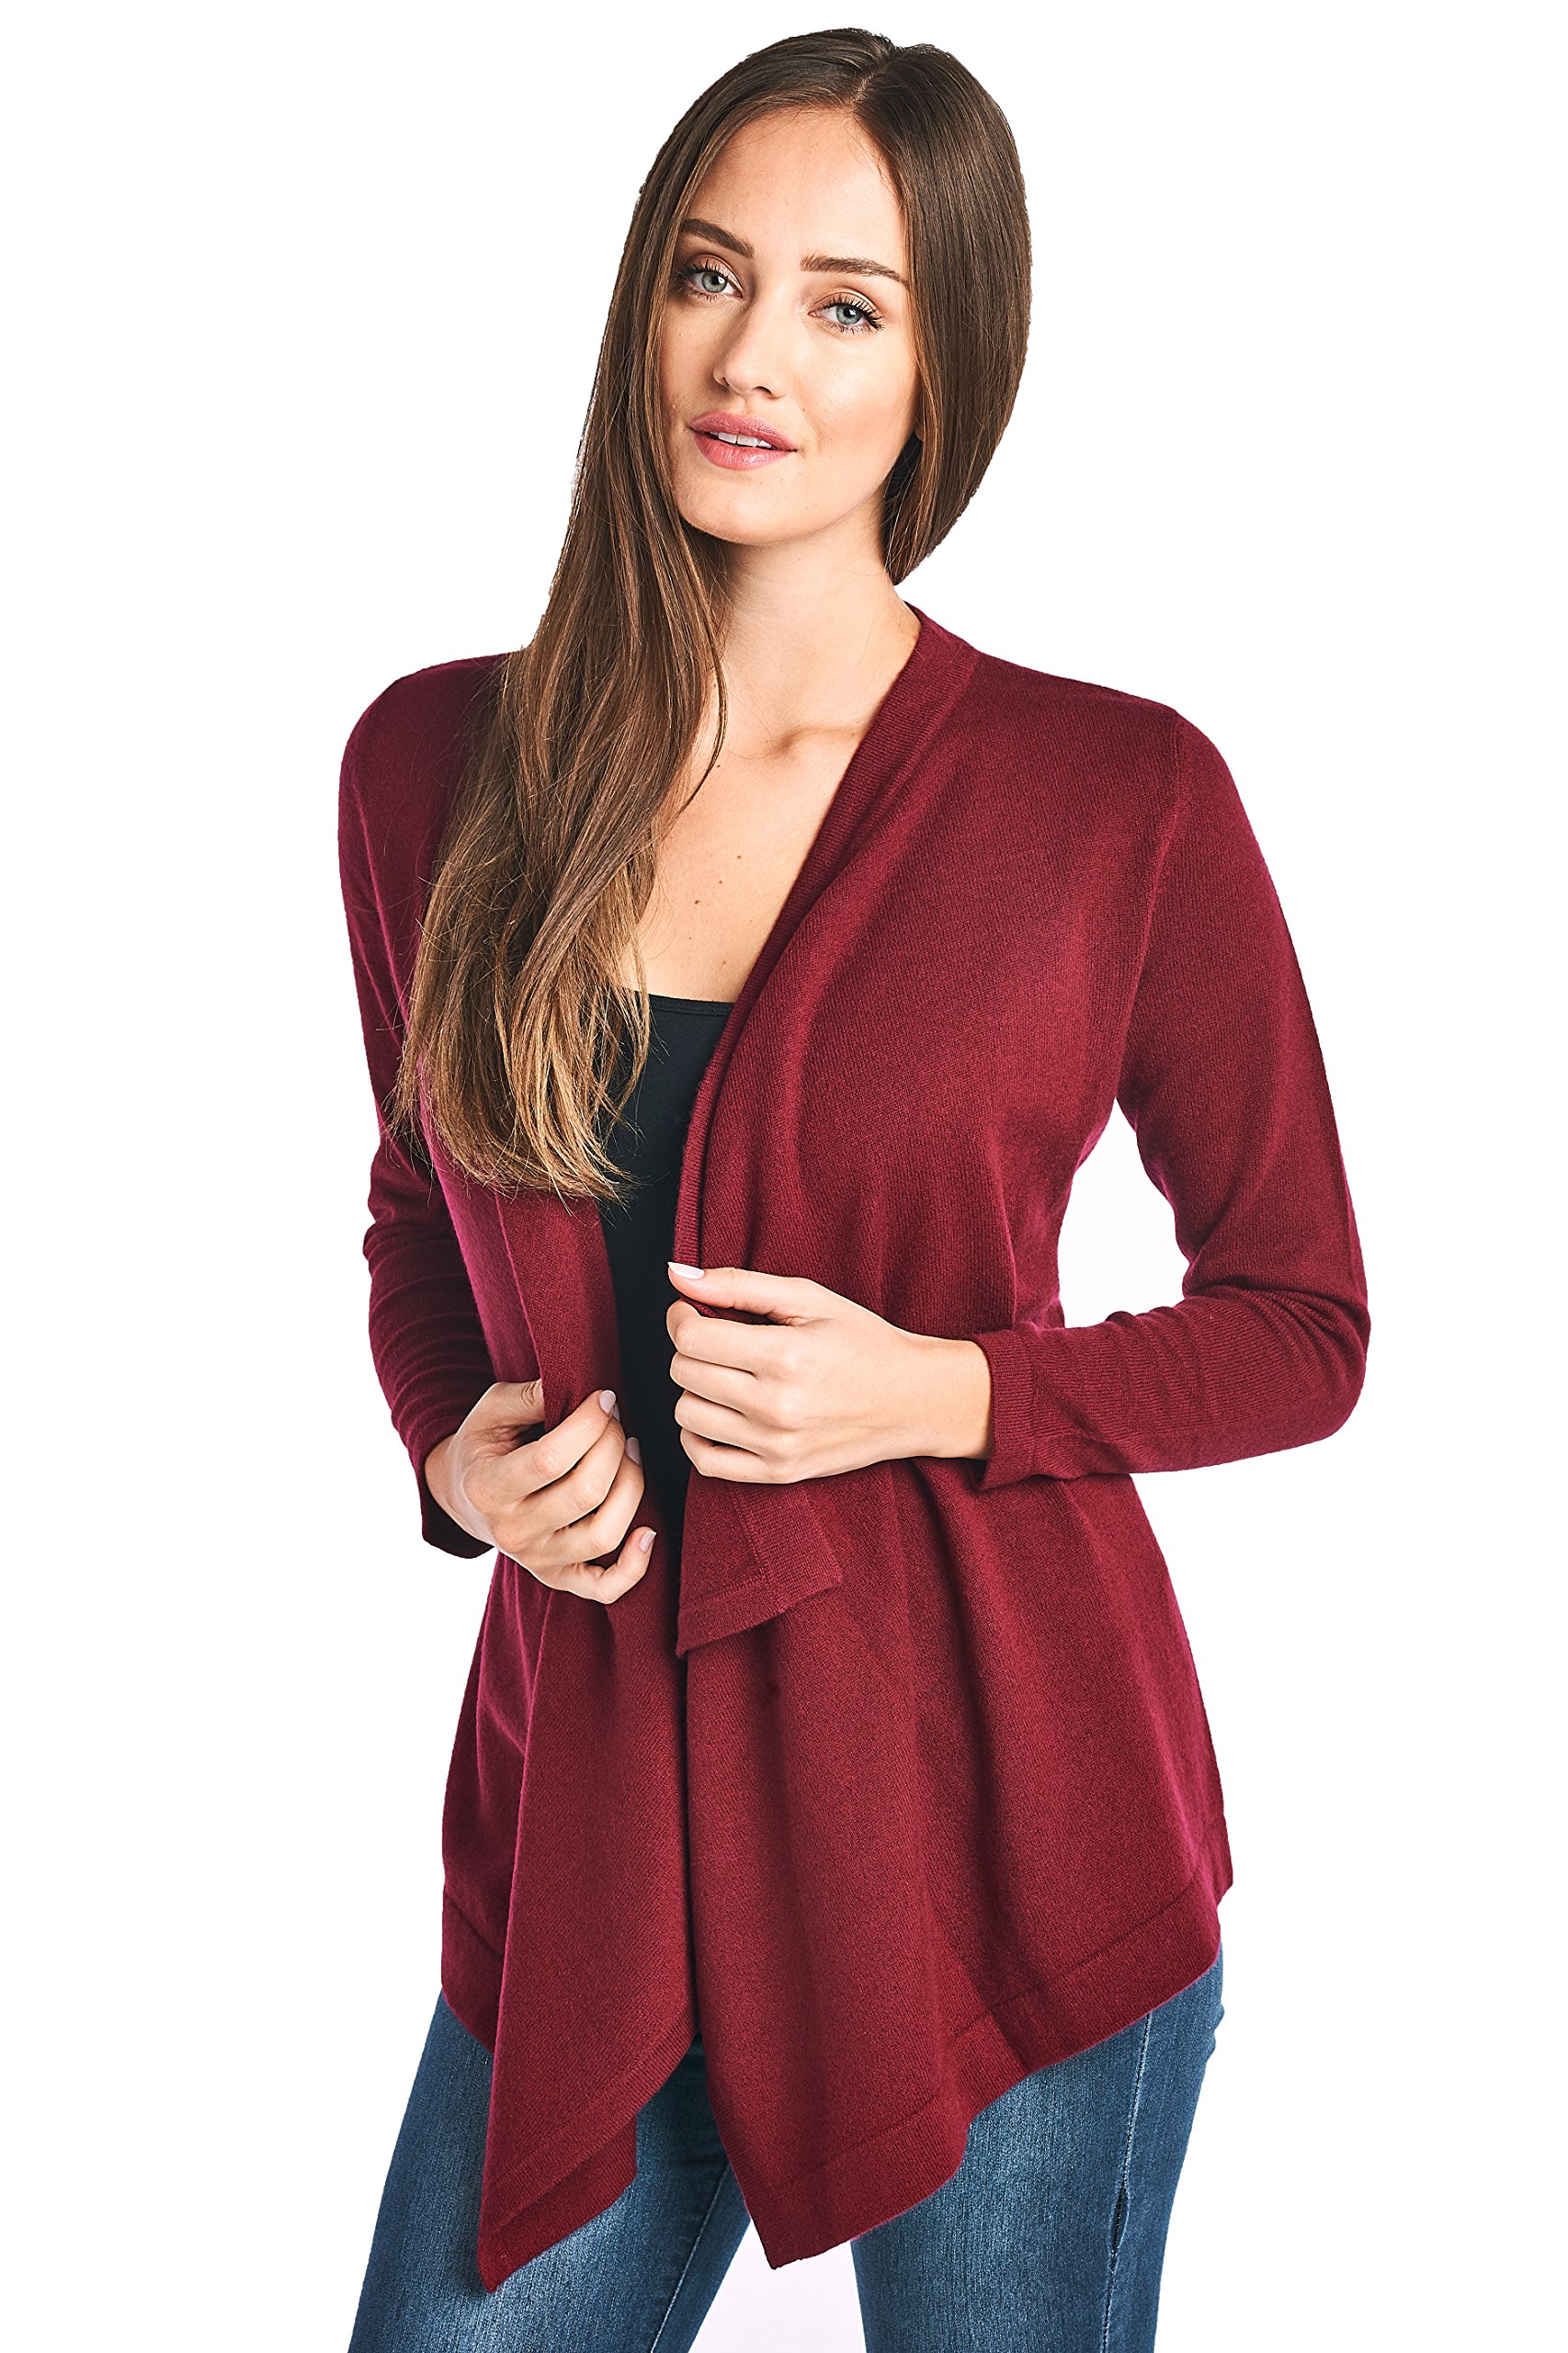 High Style Women's 100% Cashmere Long Sleeve Drape Front Asym Hem Open Cardigan Sweater (17619, Burgundy, L)